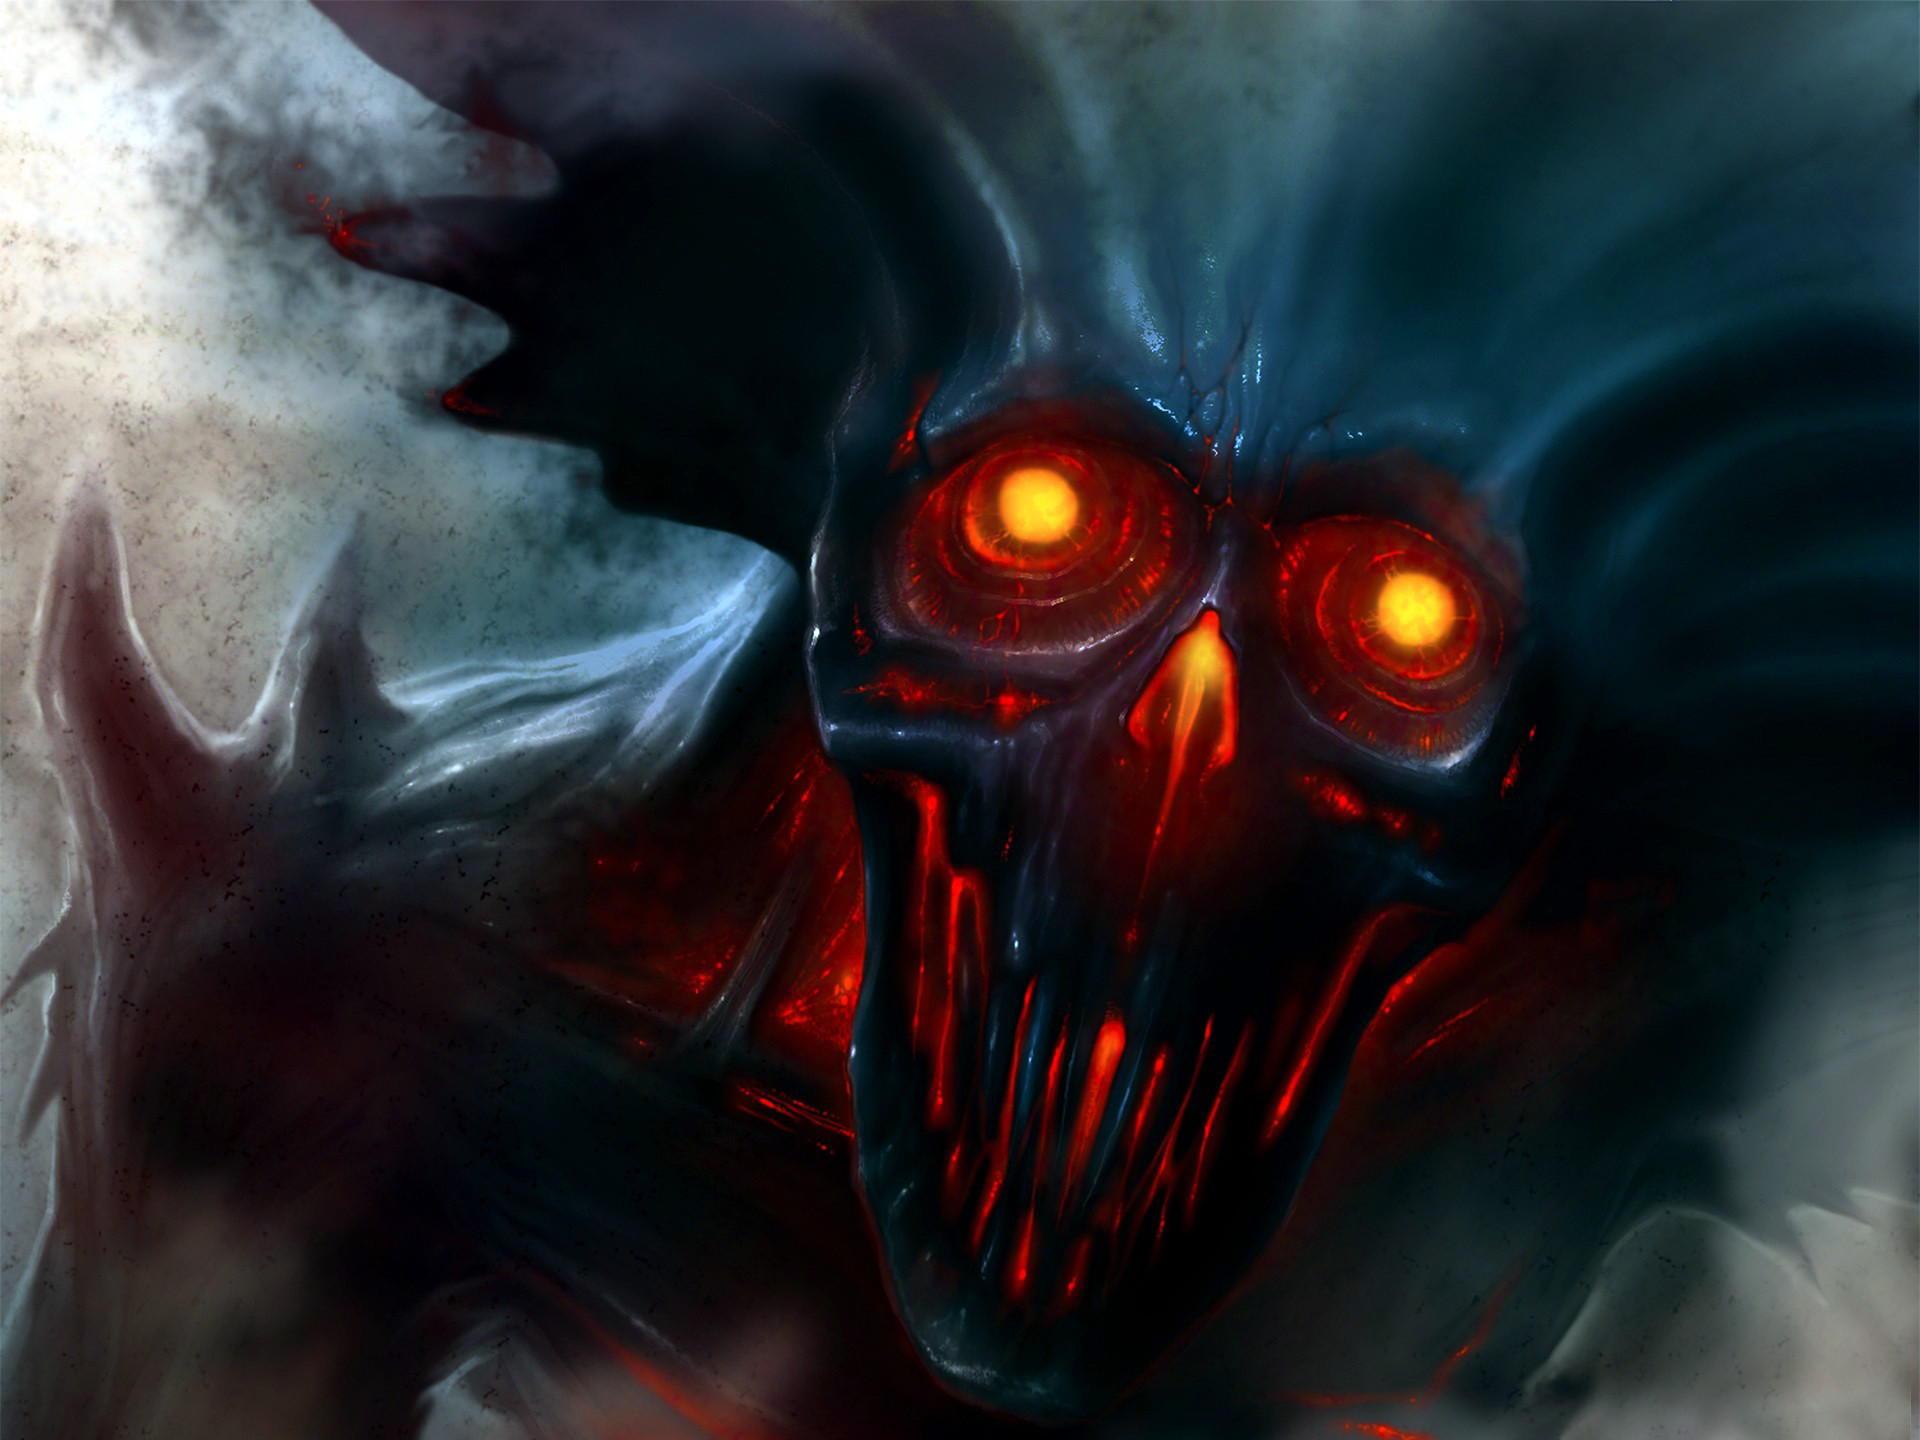 Scary Demon Wallpaper (59+ images)